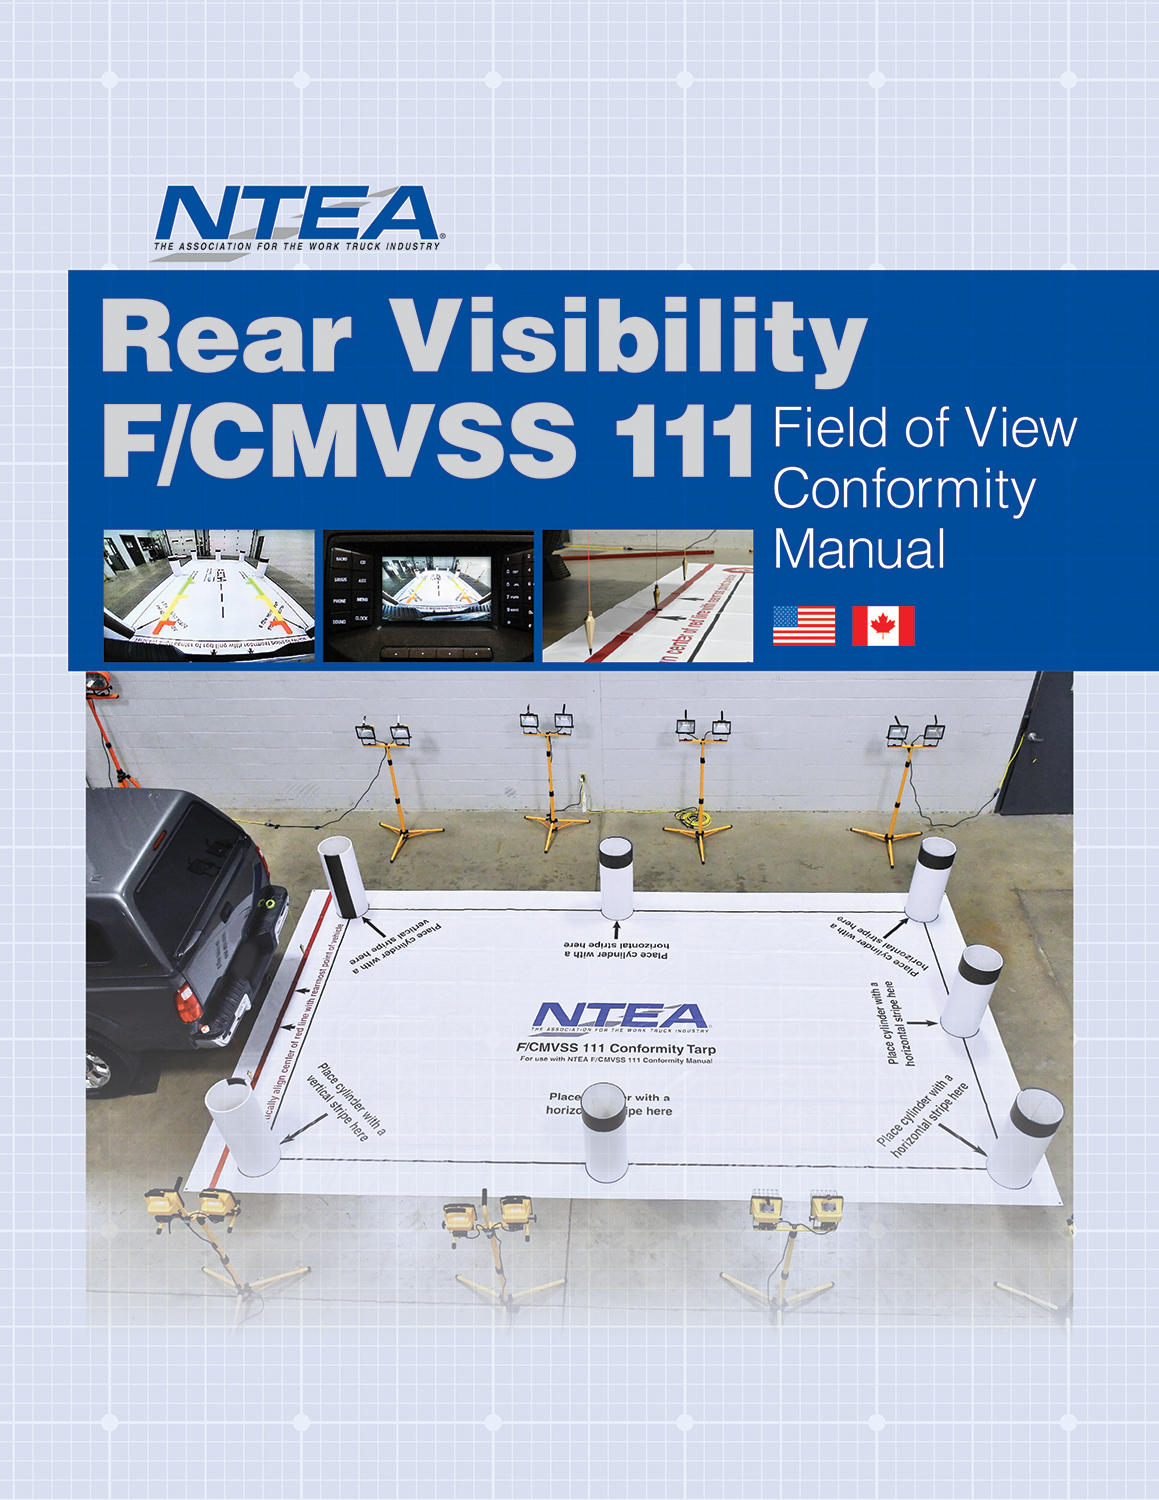 Rear Visibility F/CMVSS 111 Field of View Conformity Kit